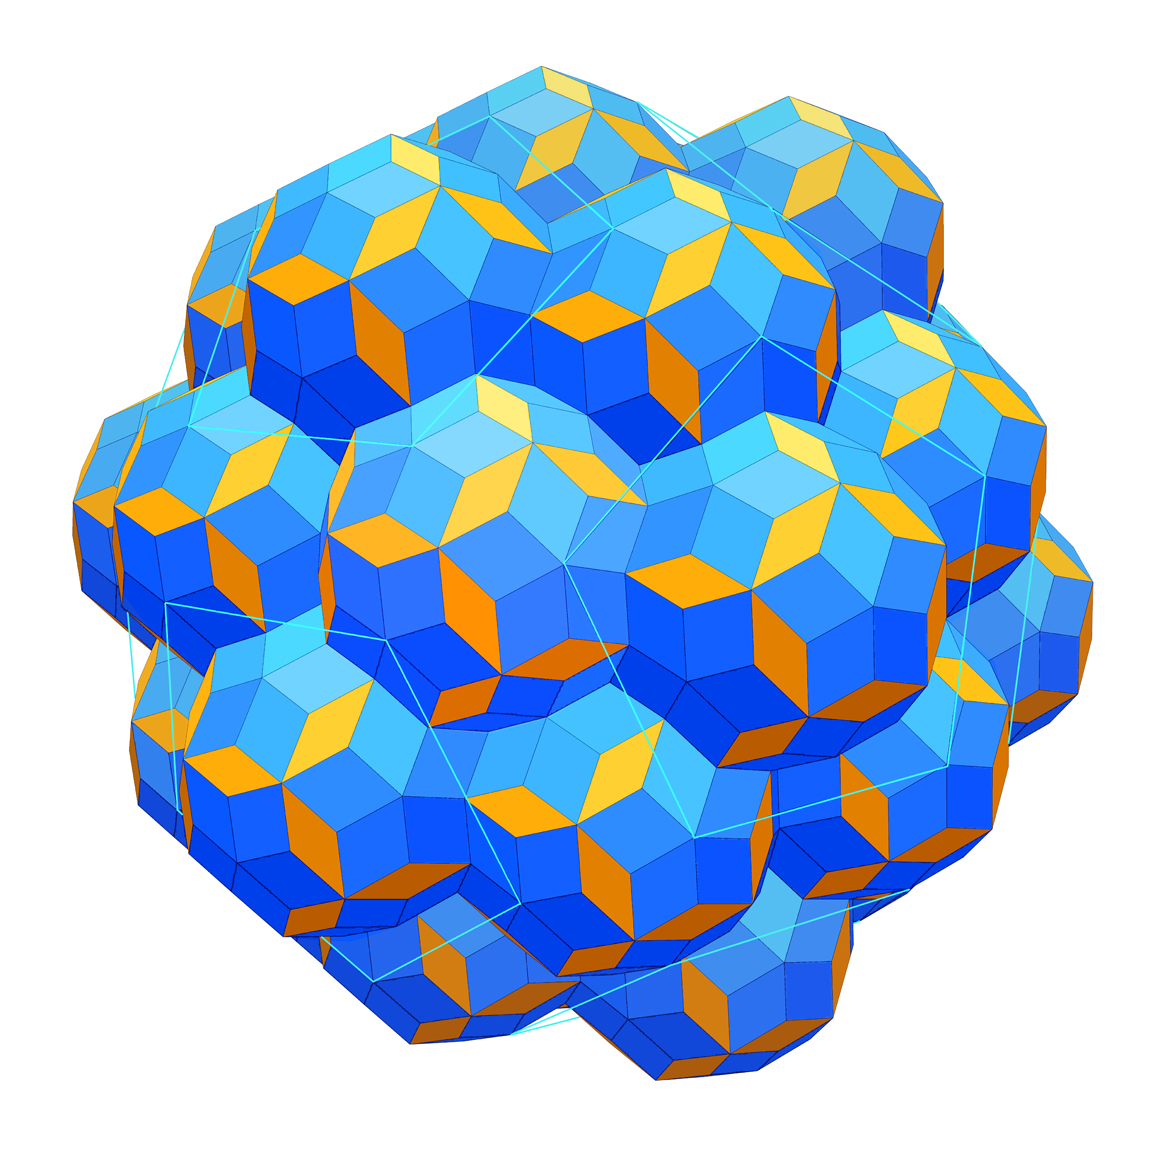 <p><em>Enneacon Cluster</em><span class='media'>Archival digital print</span>24 x 24in<br>25.25 x 25.25in (framed)<br>Edition of 35<br>2015<br><a class='inquire' href='mailto:info@gildargallery.com?subject=Artwork Inquiry CRIC0028&body=I am interested in finding out more about Enneacon Cluster by Clark Richert'>Inquire</a></p>